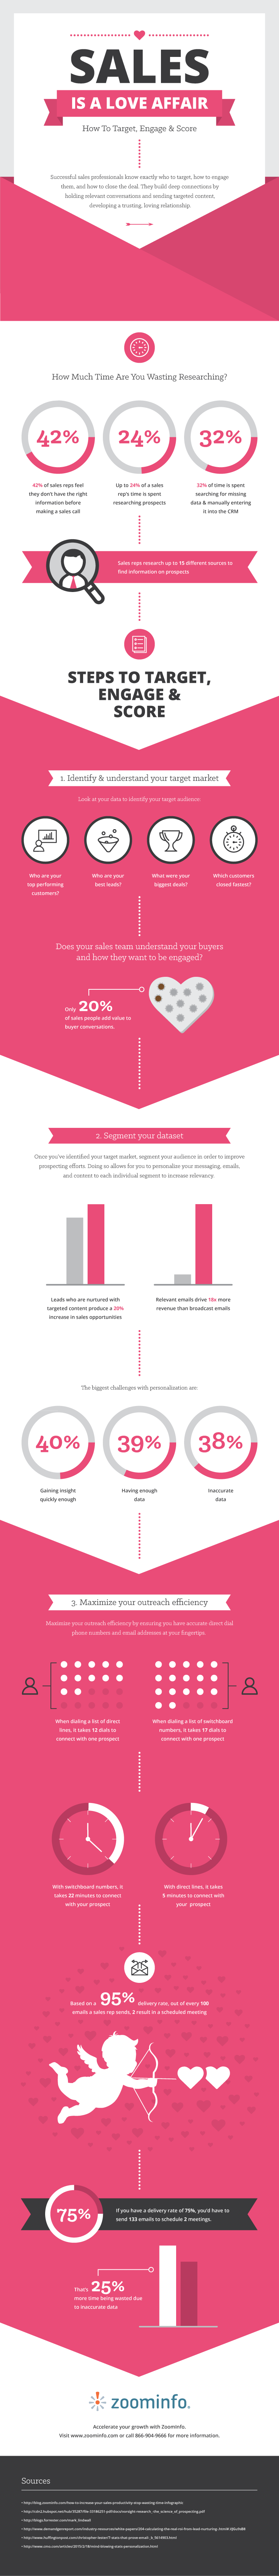 Sales-is-a-love-affair-zoominfo-infographic.png